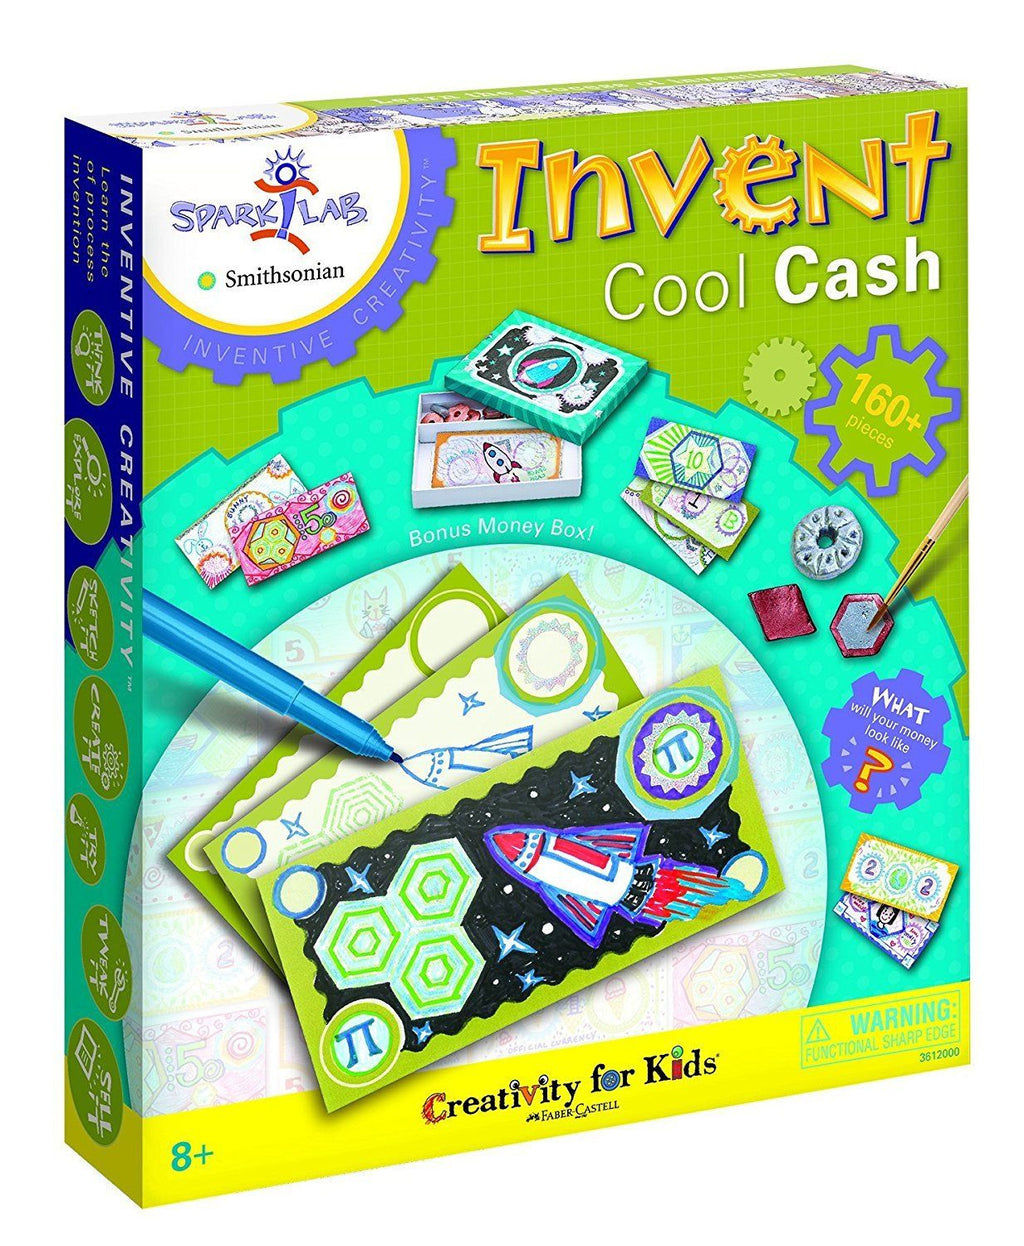 Not Lego Tagged Crafts Castle Toys Snap Circuits Jr Select Green Elephant Creativity For Kids 3612000 Spark Lab Invent Cool Cash